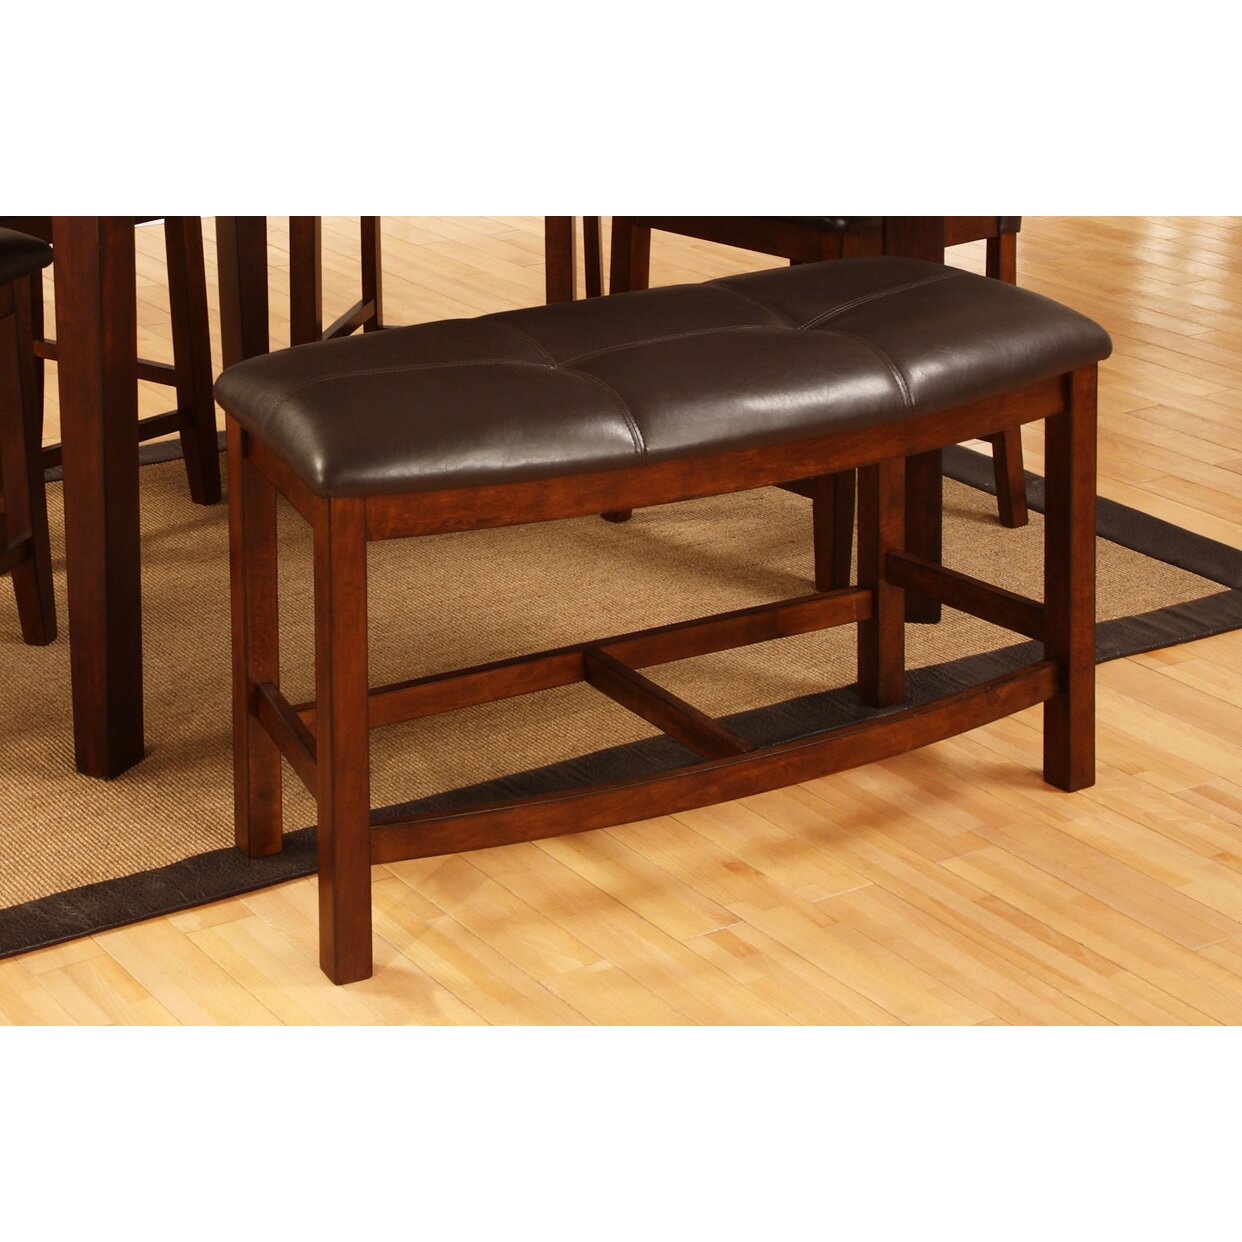 Best Quality Furniture Upholstered Dining Bench  Reviews Wayfair - Best quality dining room furniture